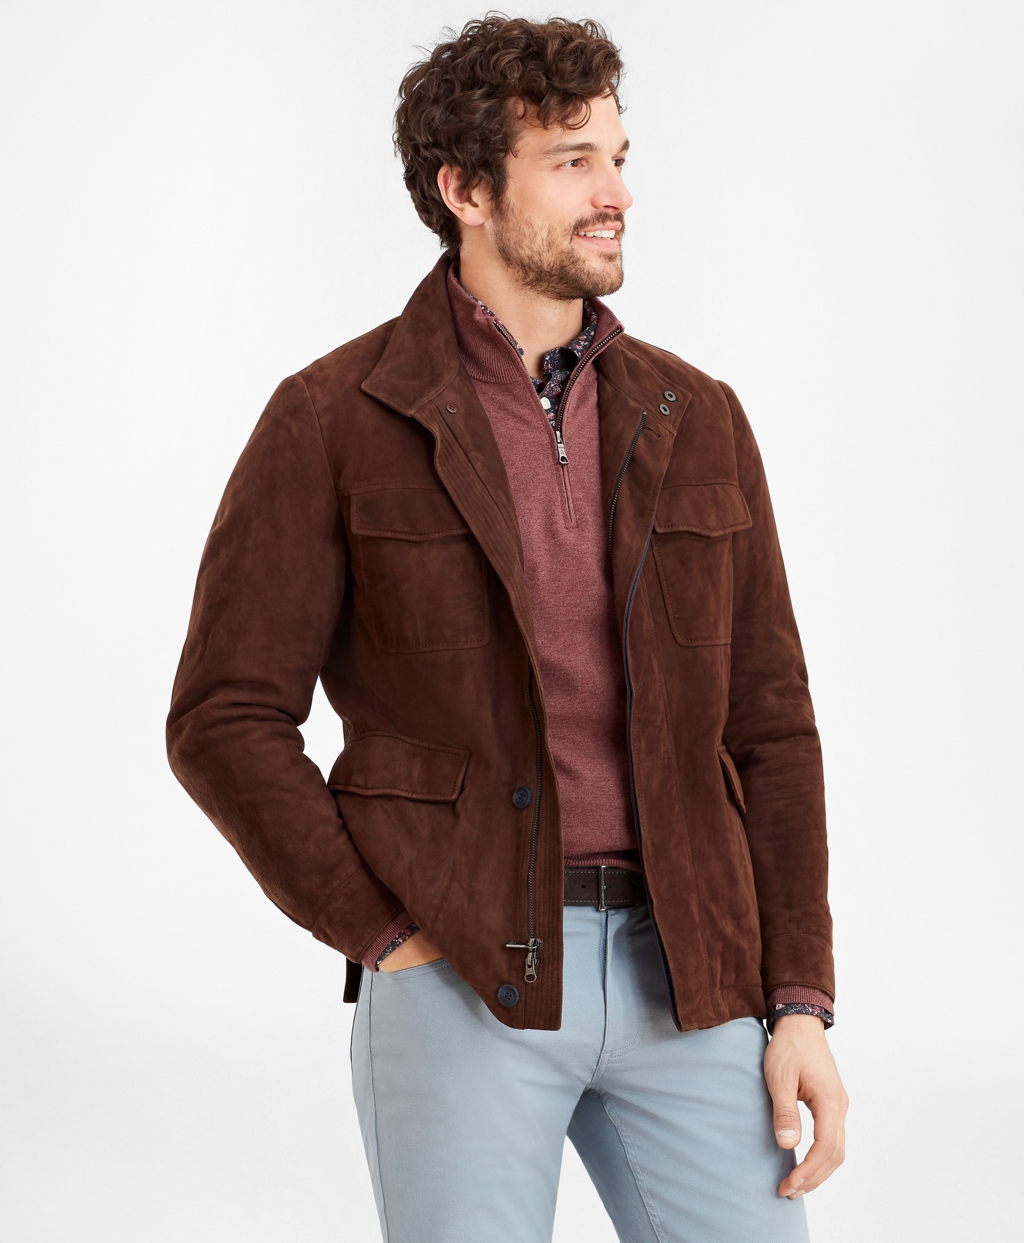 60s 70s Men's Jackets & Sweaters Brooks Brothers Mens Suede Field Jacket $908.60 AT vintagedancer.com